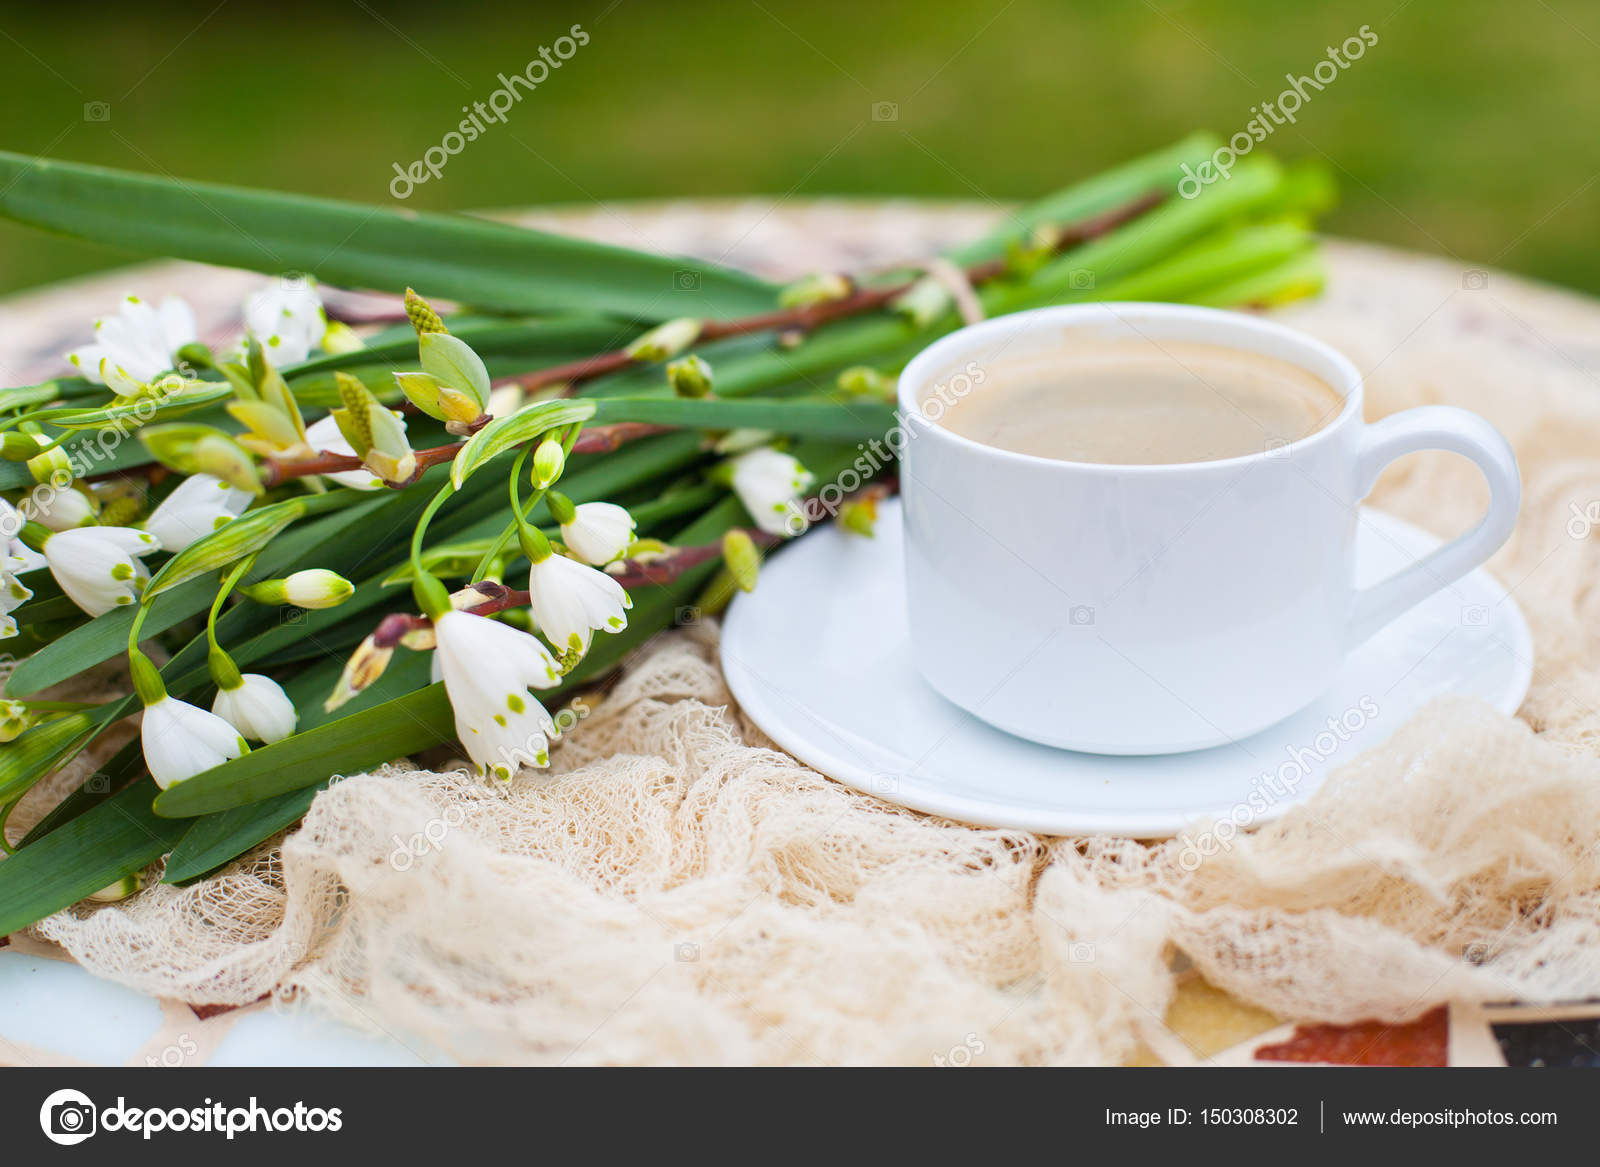 Bouquet White Spring Bell Flowers And Coffee Cup On Table In Gar